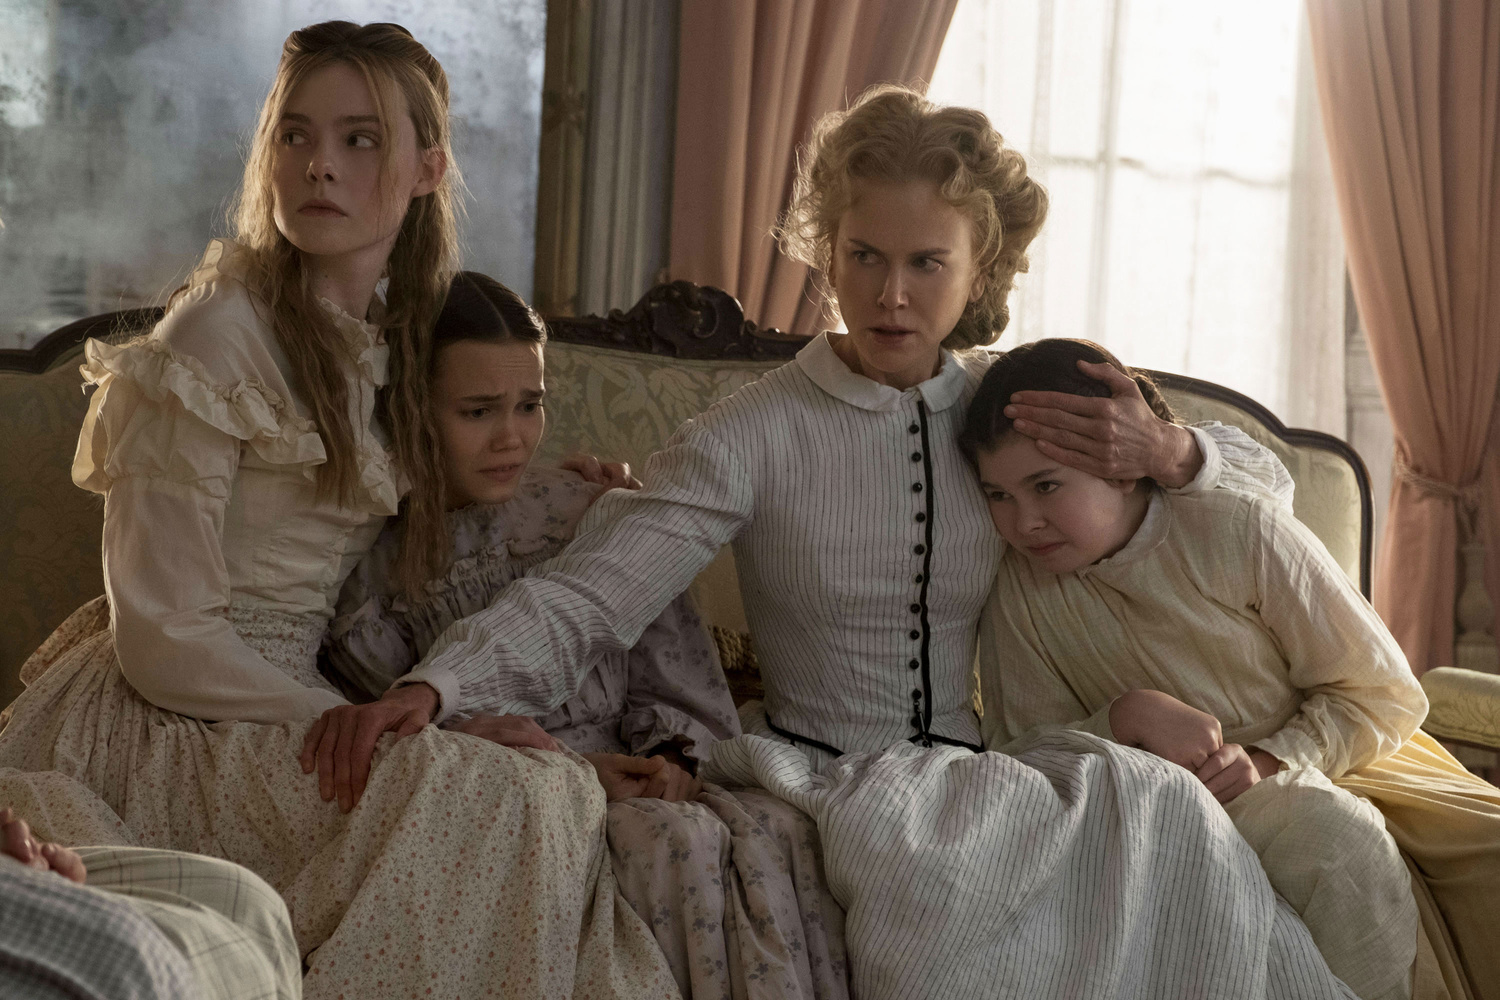 The Beguiled. 2017. USA. Directed by Sofia Coppola. Courtesy of Focus Features